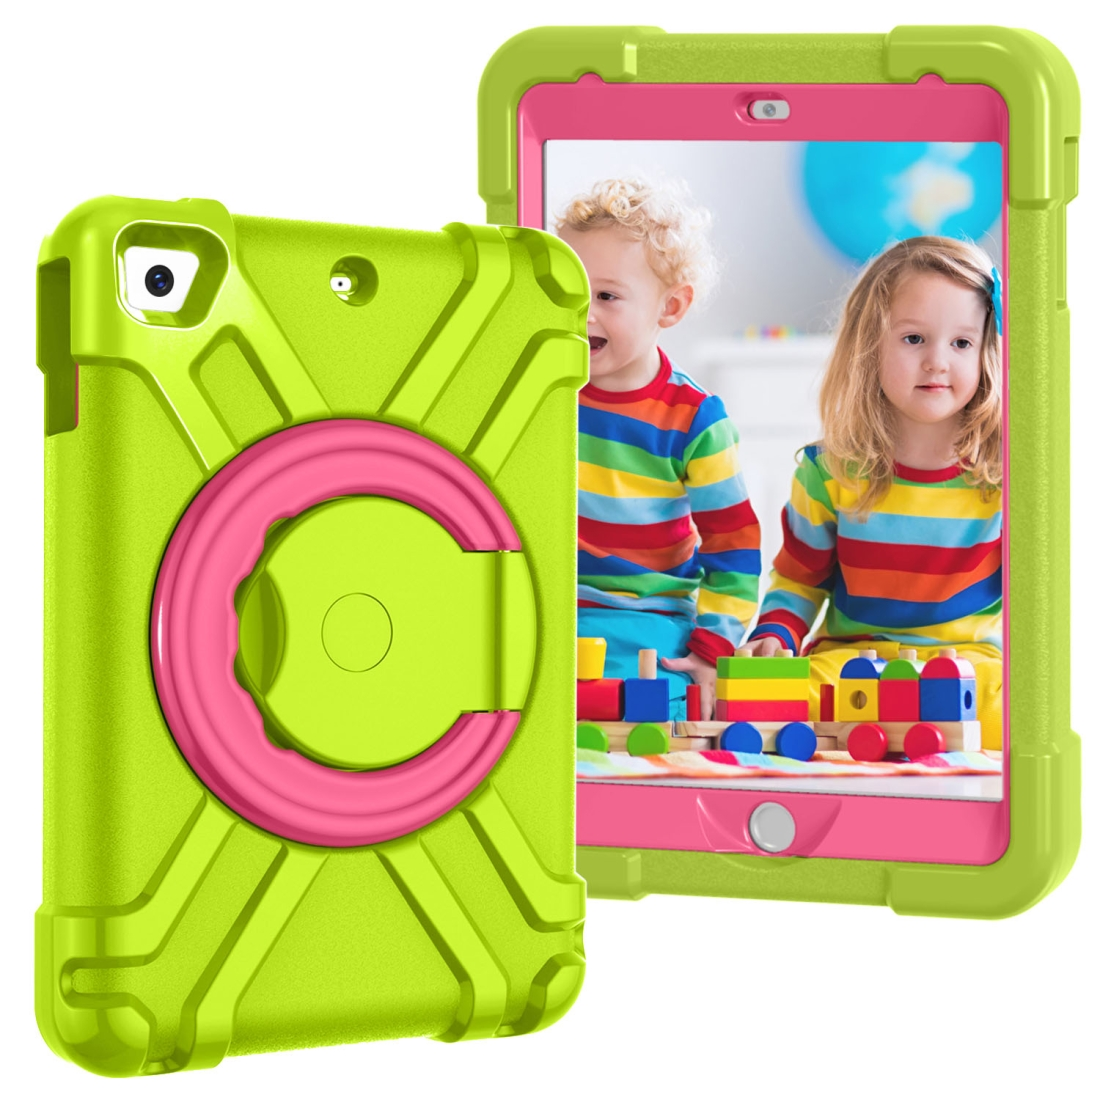 iPad Mini Case For Kids, Fits iPad Mini & Mini 2 & 3, Durable Protective Case (Grass Green/Rose Red)